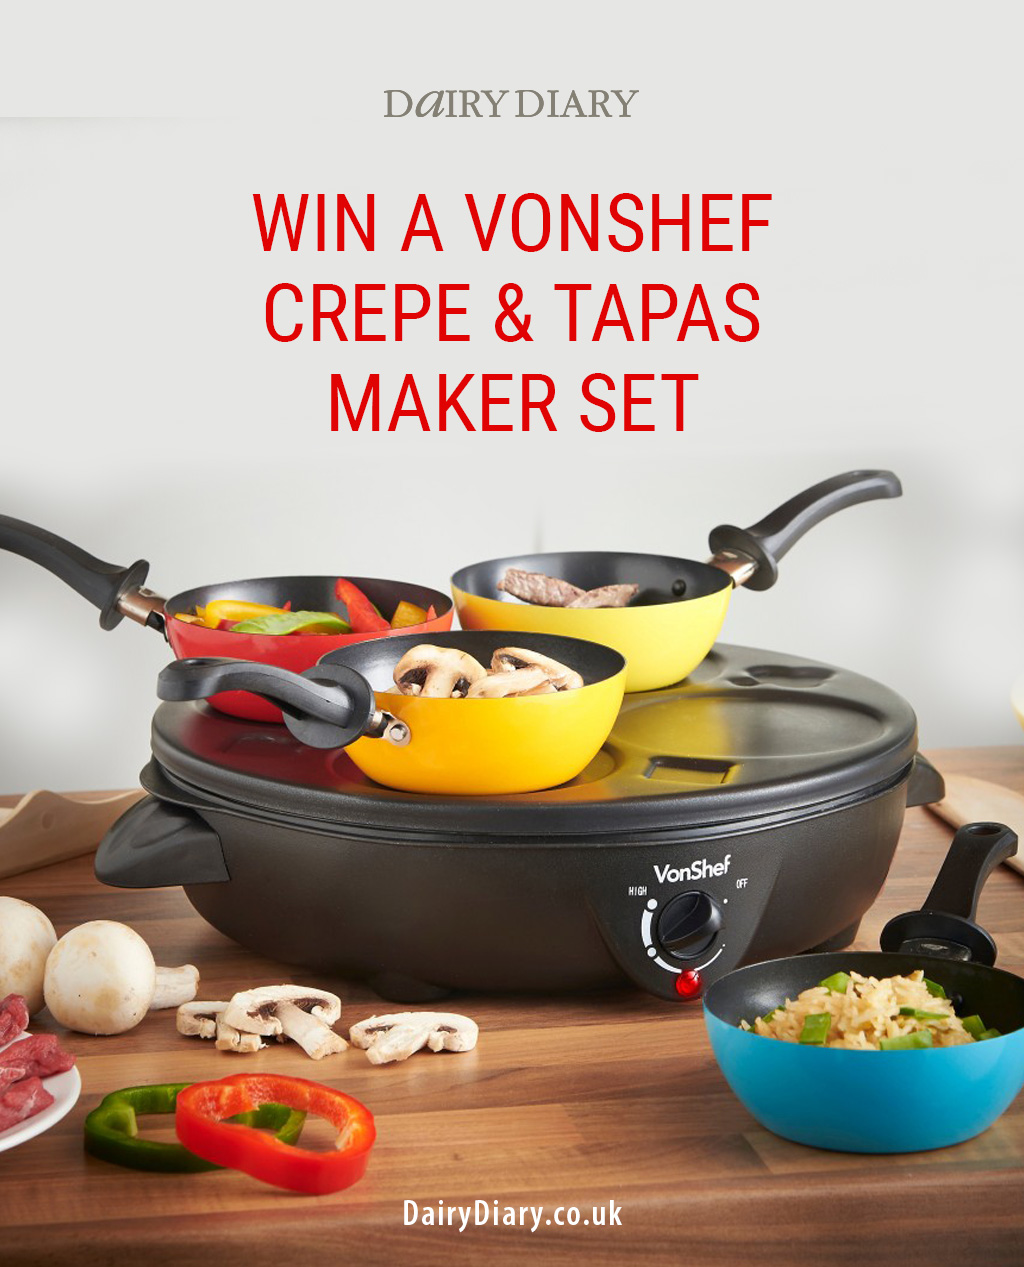 Dairy Diary is giving you the chance to win a VonShef Crepe & Tapas Maker Set